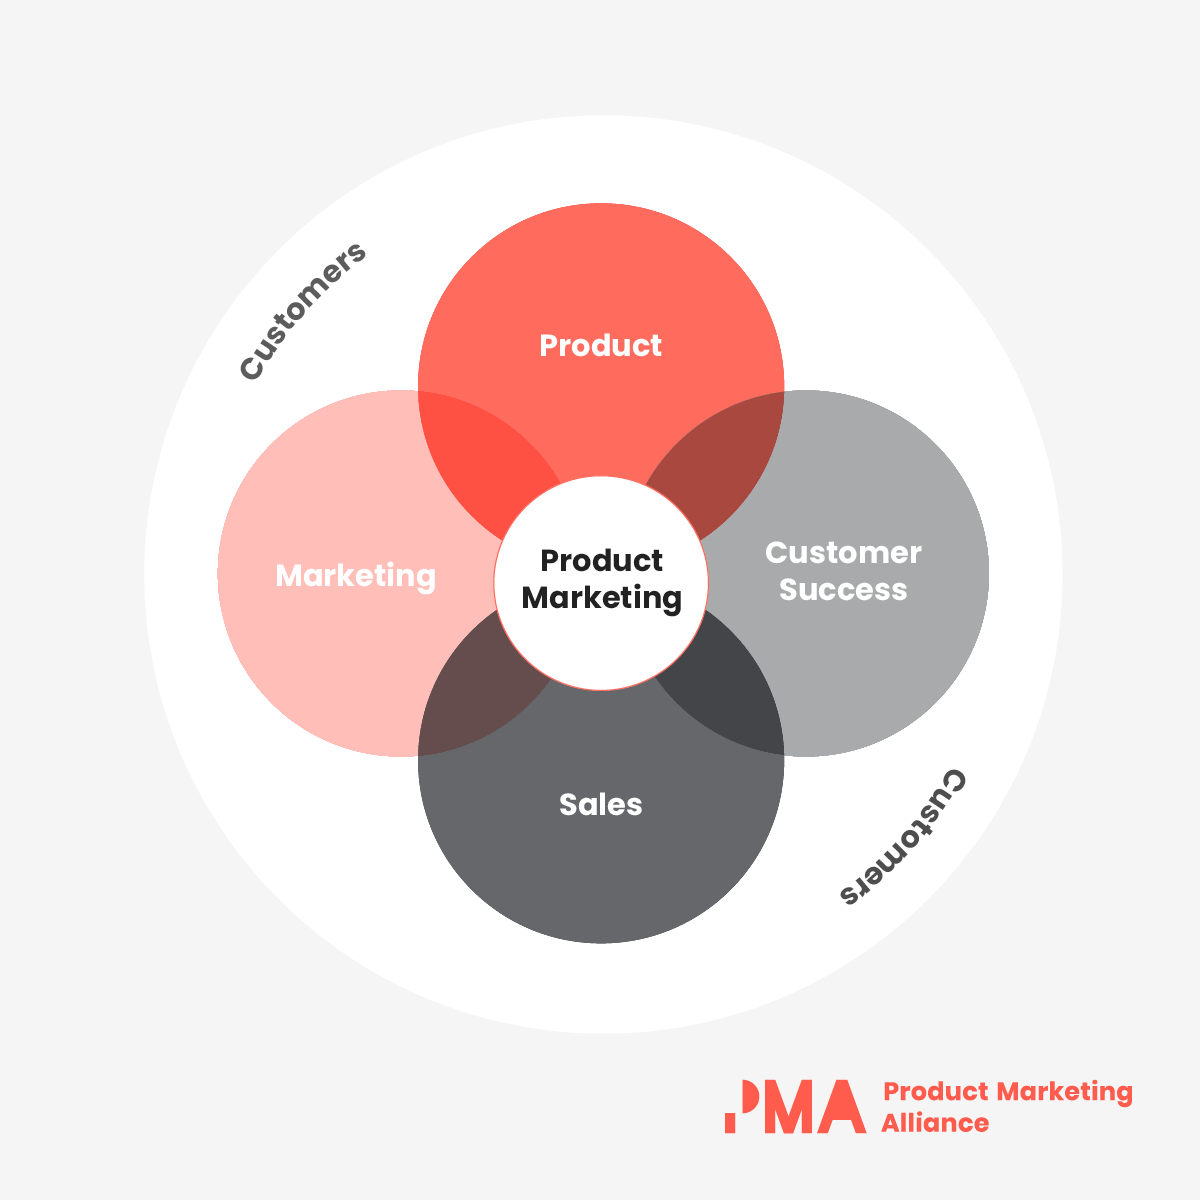 A Venn Diagram with a circle labelled 'Product Marketing' in the middle, overlapping four other circles that also overlap each other, labelled 'Marketing', 'Product', 'Customer Success' and 'Sales'. All these circles are inside a larger circle labelled 'Customers'.